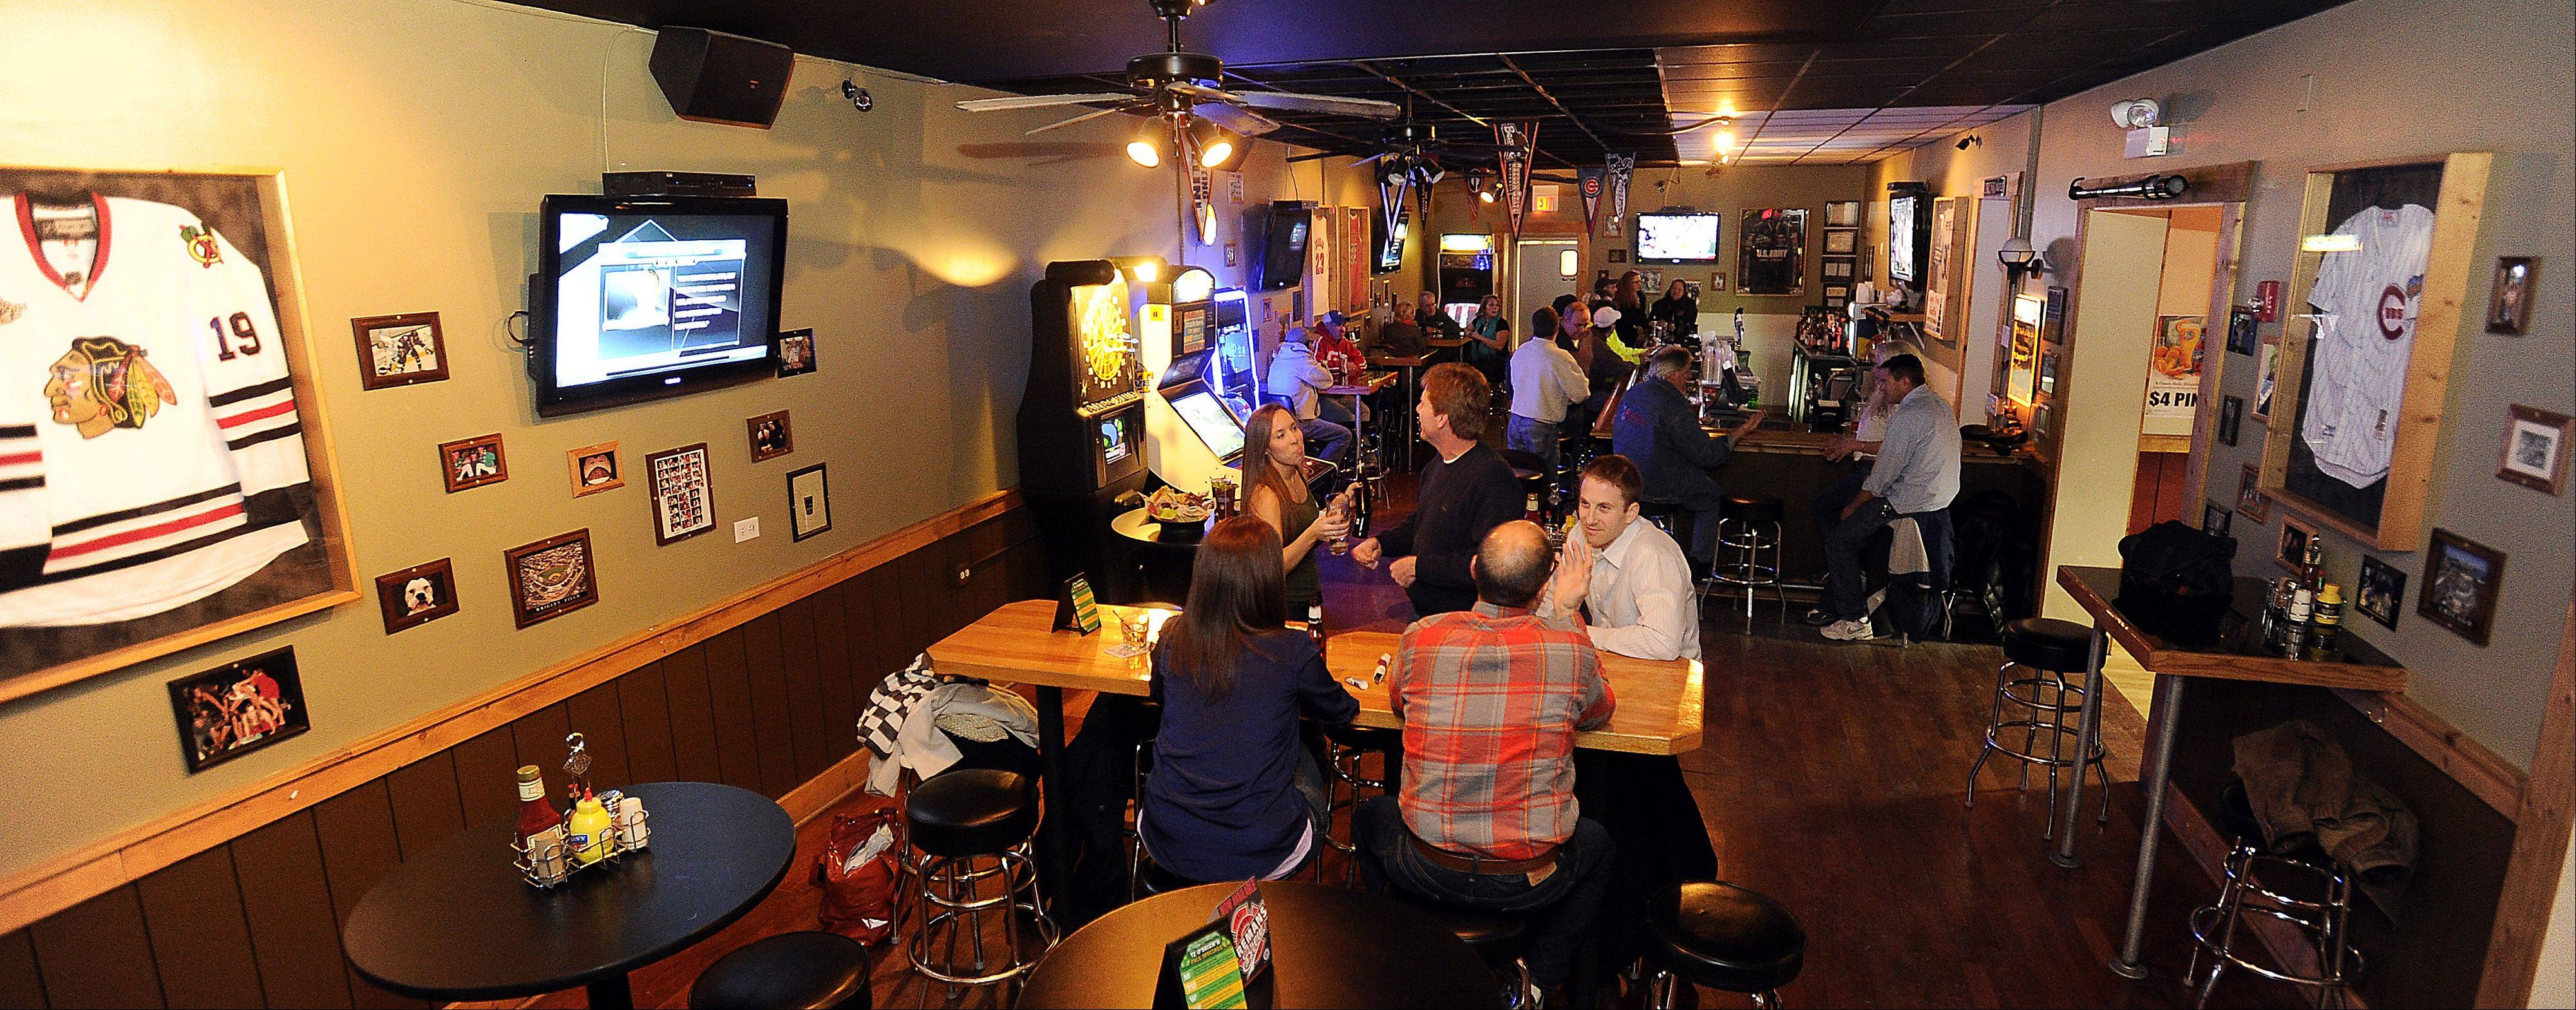 TJ O'Brien's Bar and Grill in Palatine serves up bar favorites like burgers and pizza as well as Irish specialities.